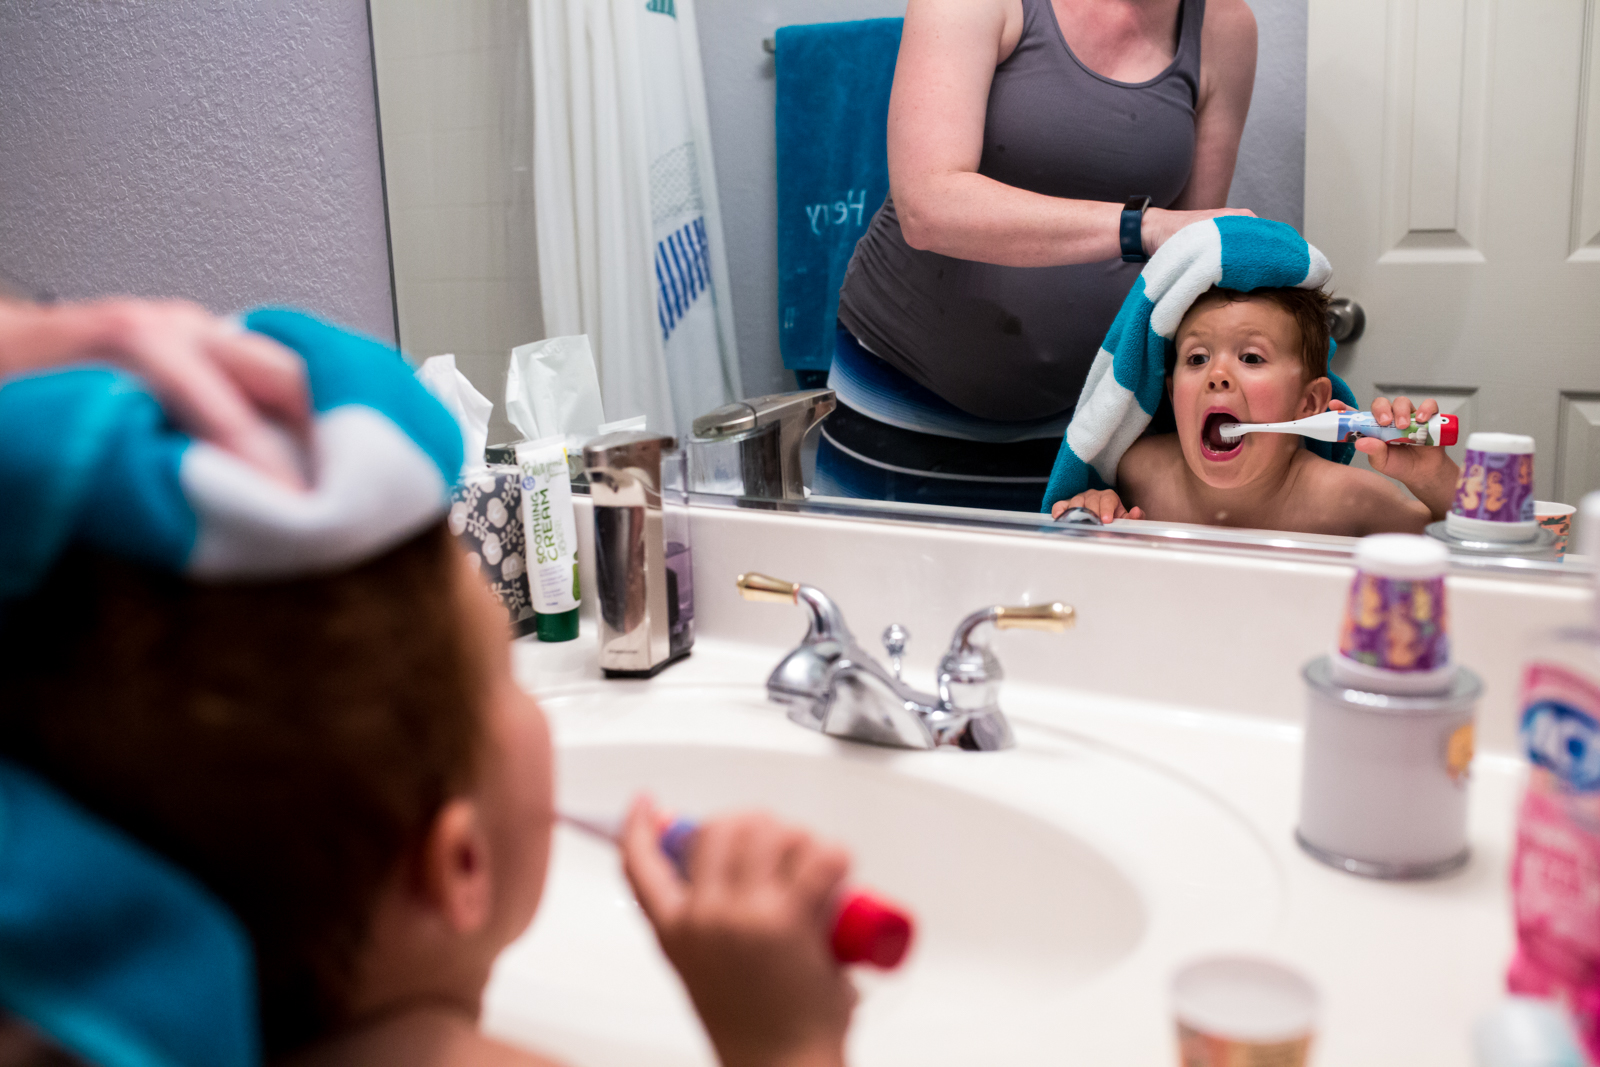 Little boy makes a goofy face in the mirror while his mom tries to dry off his hair after a bath, photo taken by Lawren Rose Photography in McKinney Texas